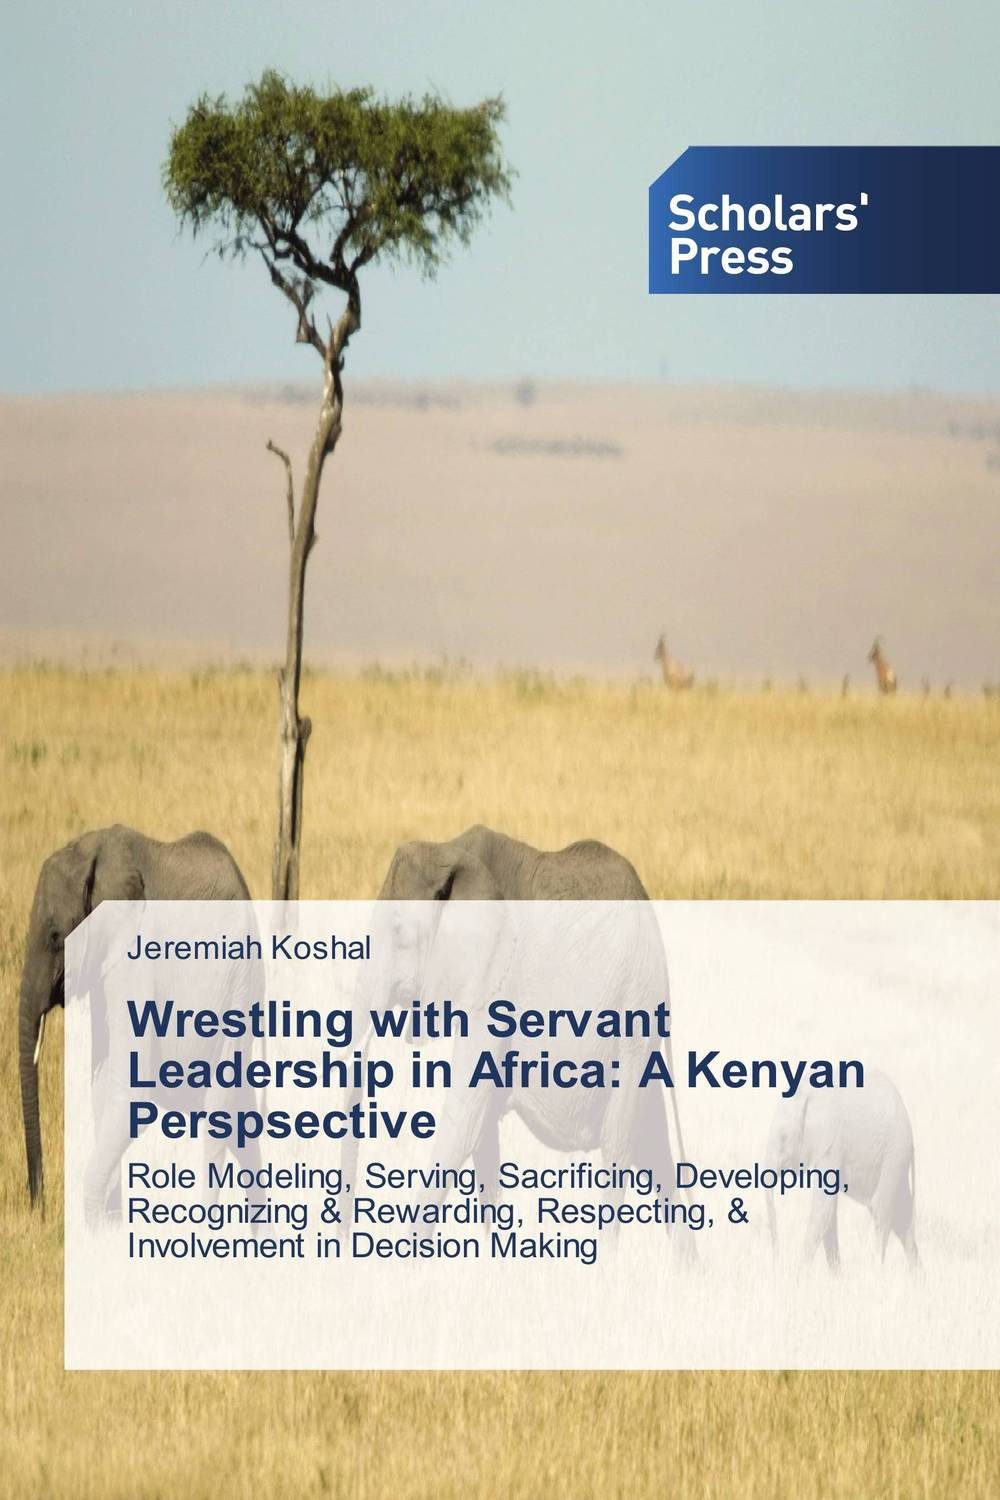 Wrestling with Servant Leadership in Africa: A Kenyan Perspsective thomas cleary the book of leadership and strategy